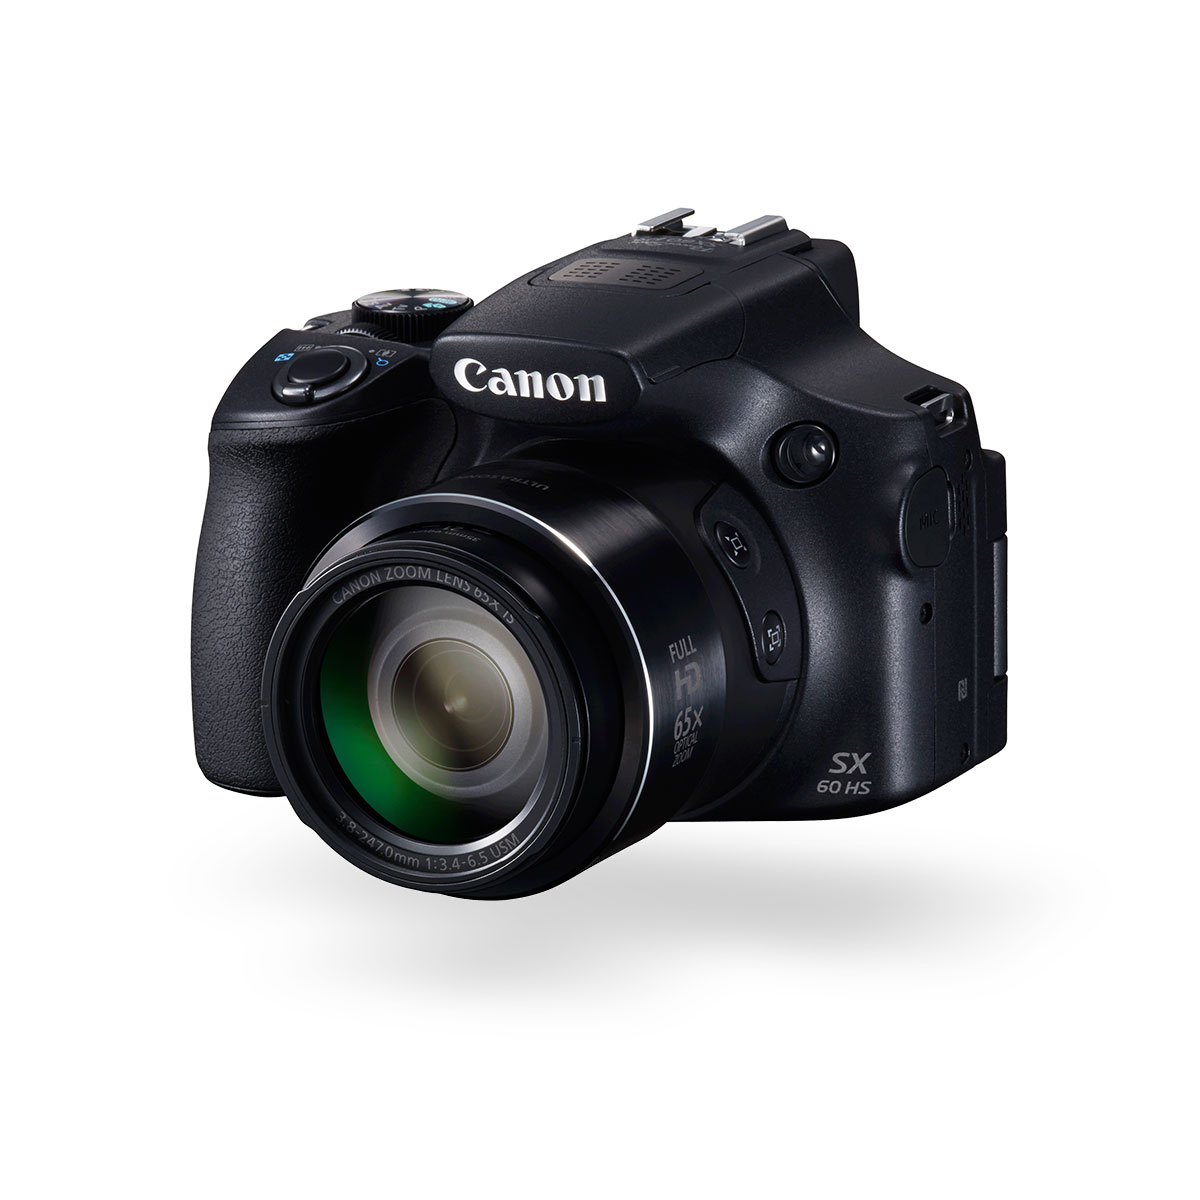 Front angled view of the Canon PowerShot SX60 HS super zoom digital camera